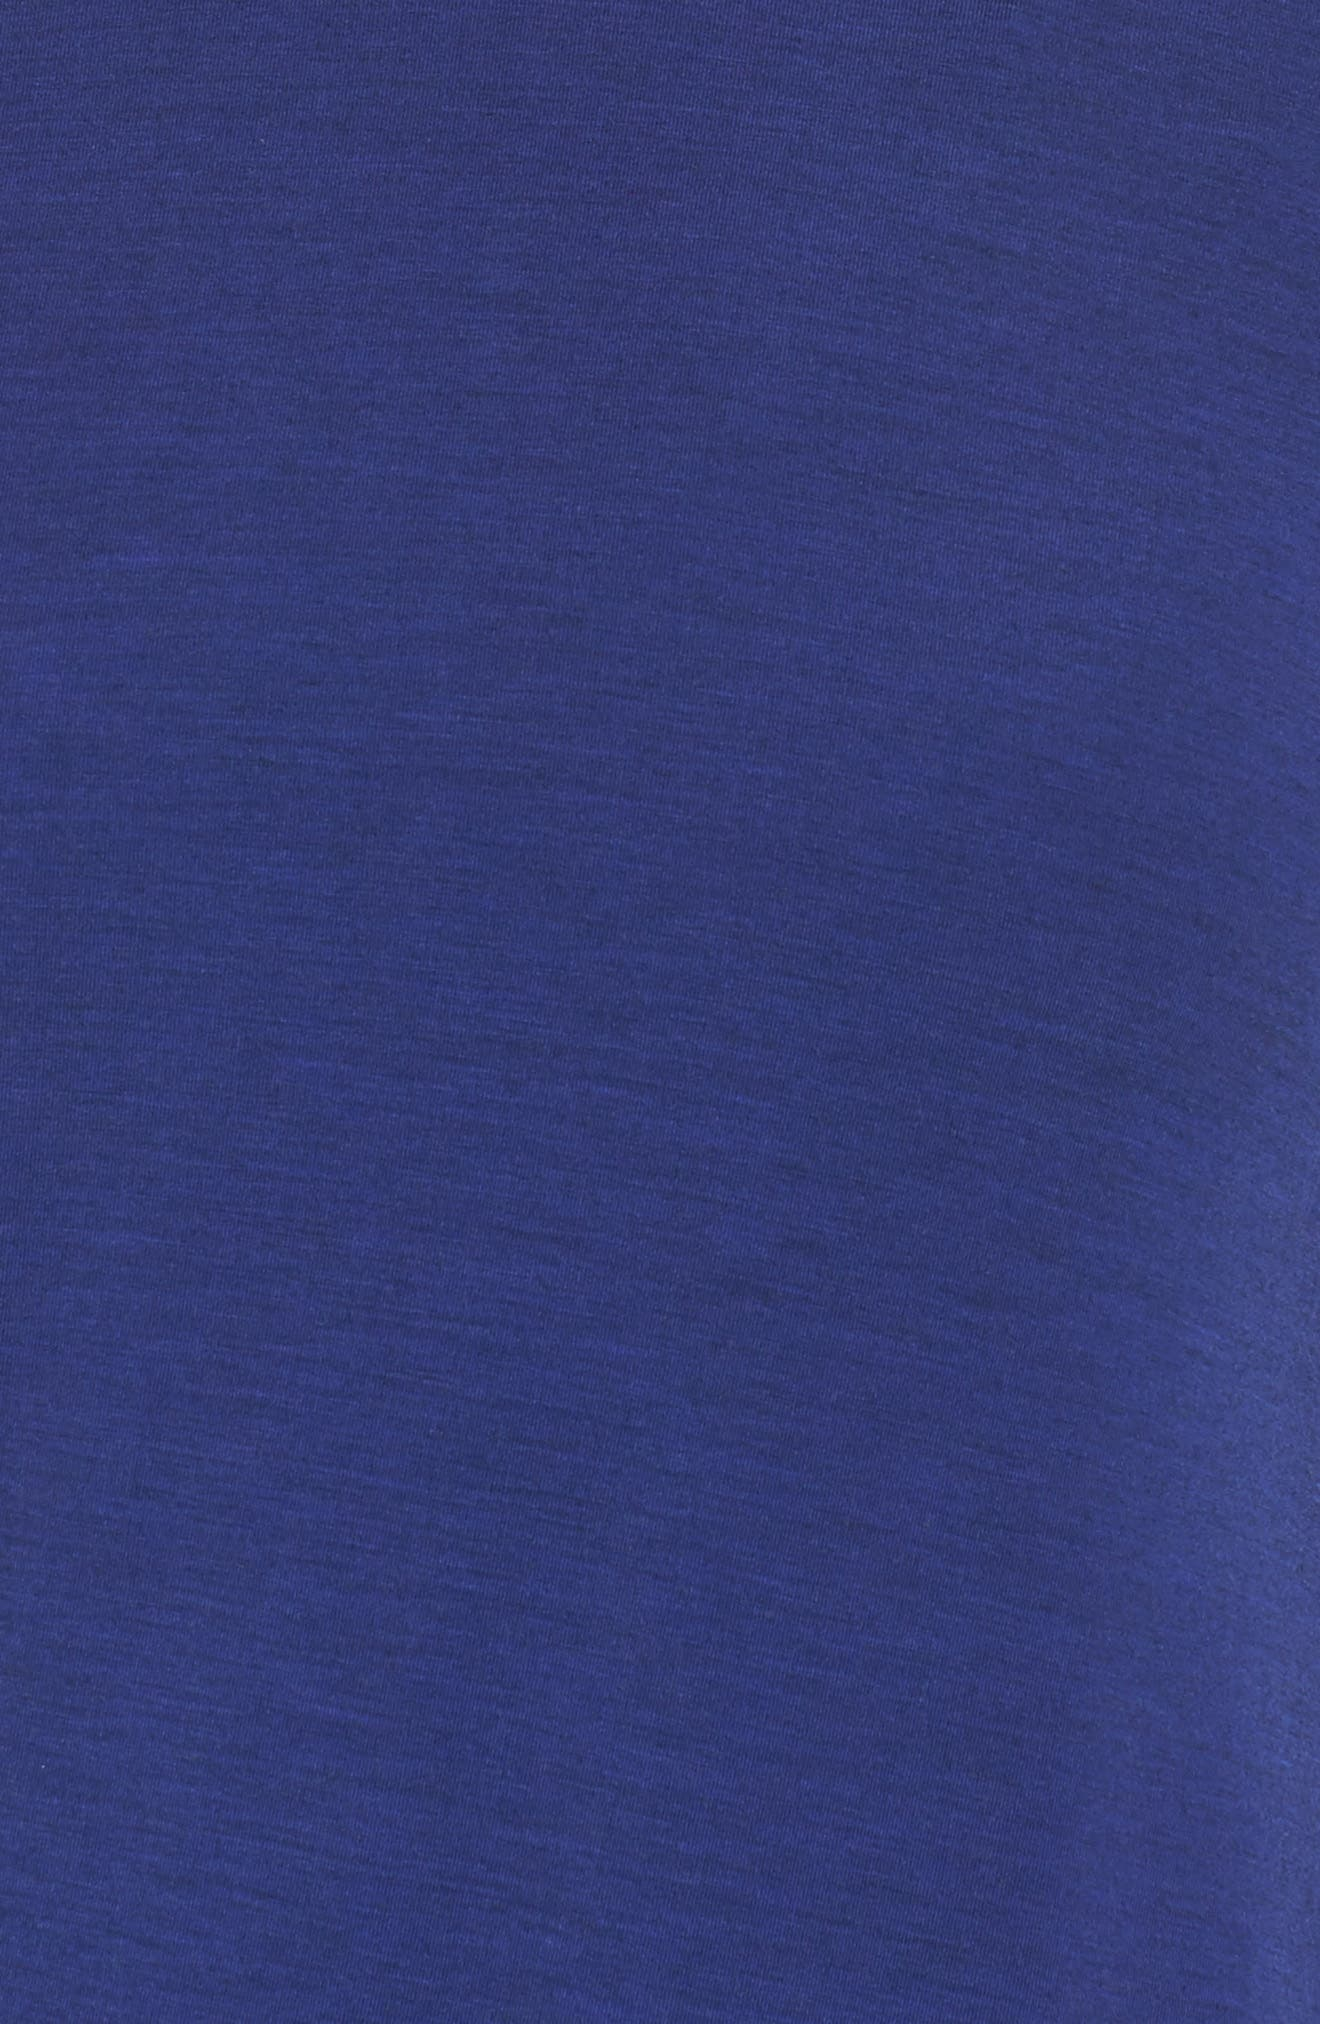 Long Sleeve Layering Tee,                             Alternate thumbnail 6, color,                             Tempest Heather